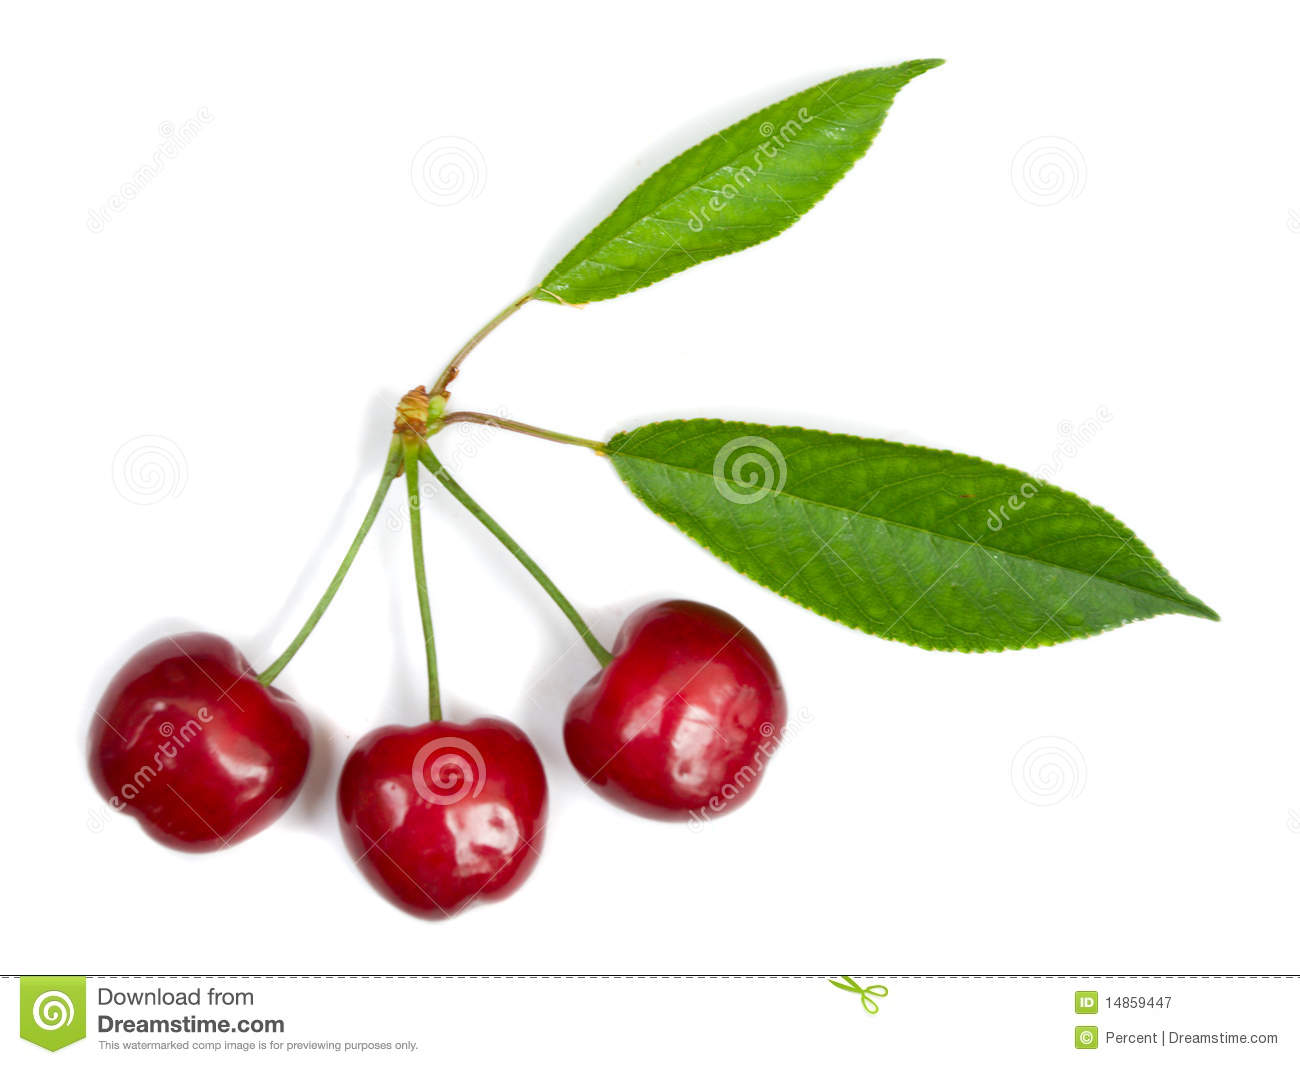 Three ripe cherries with leaves